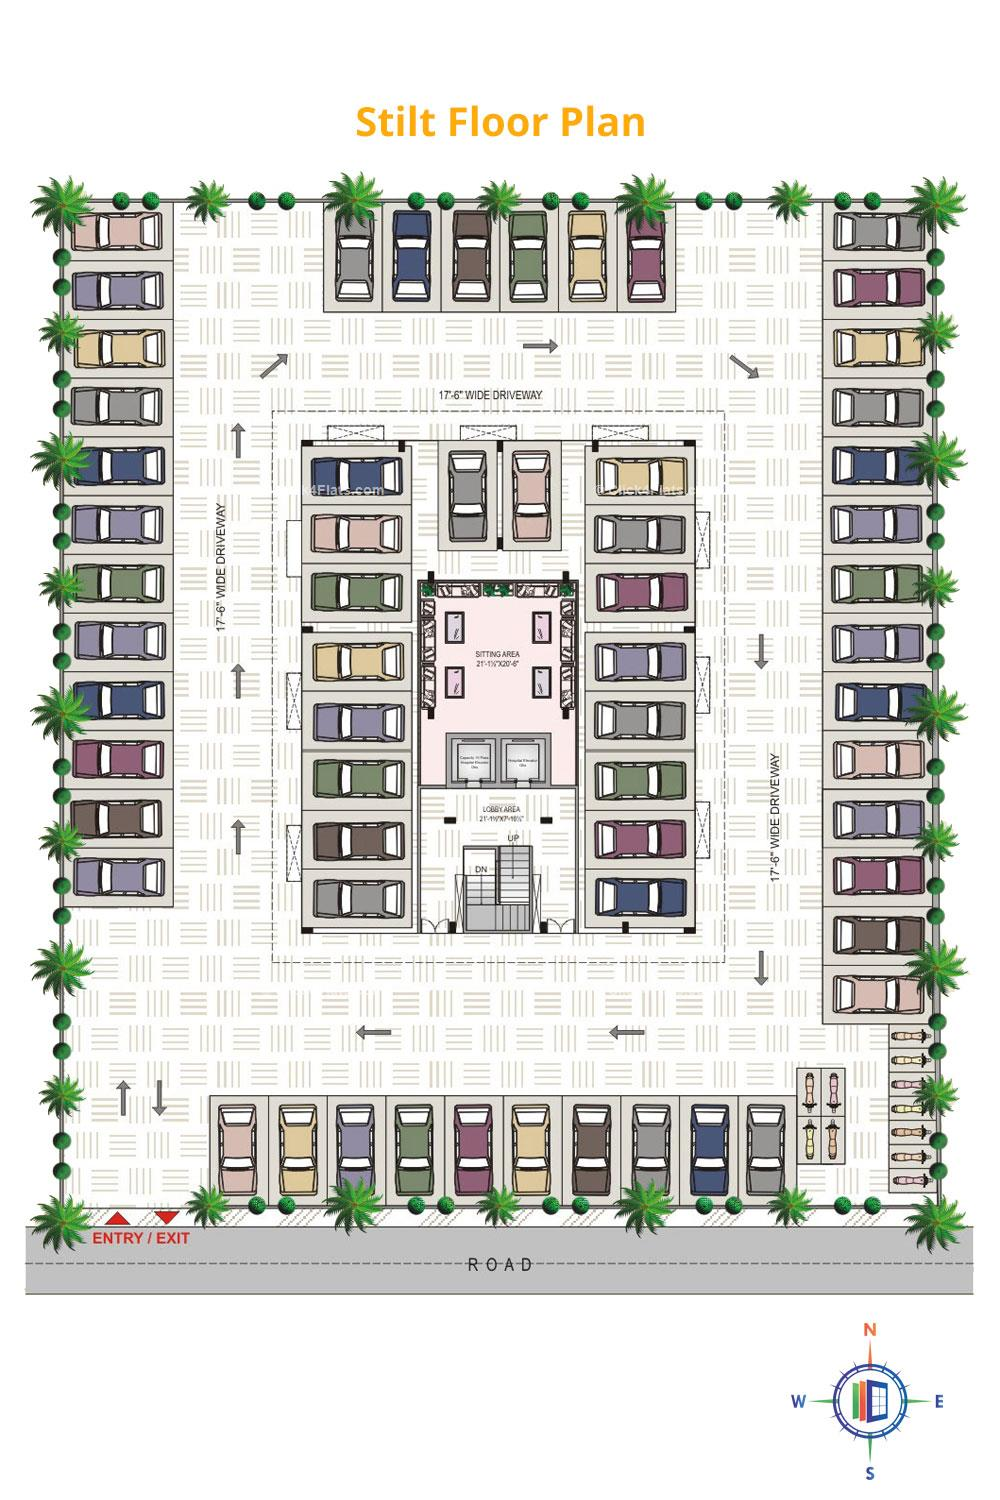 Pearl Palacia Stilt Floor Plan